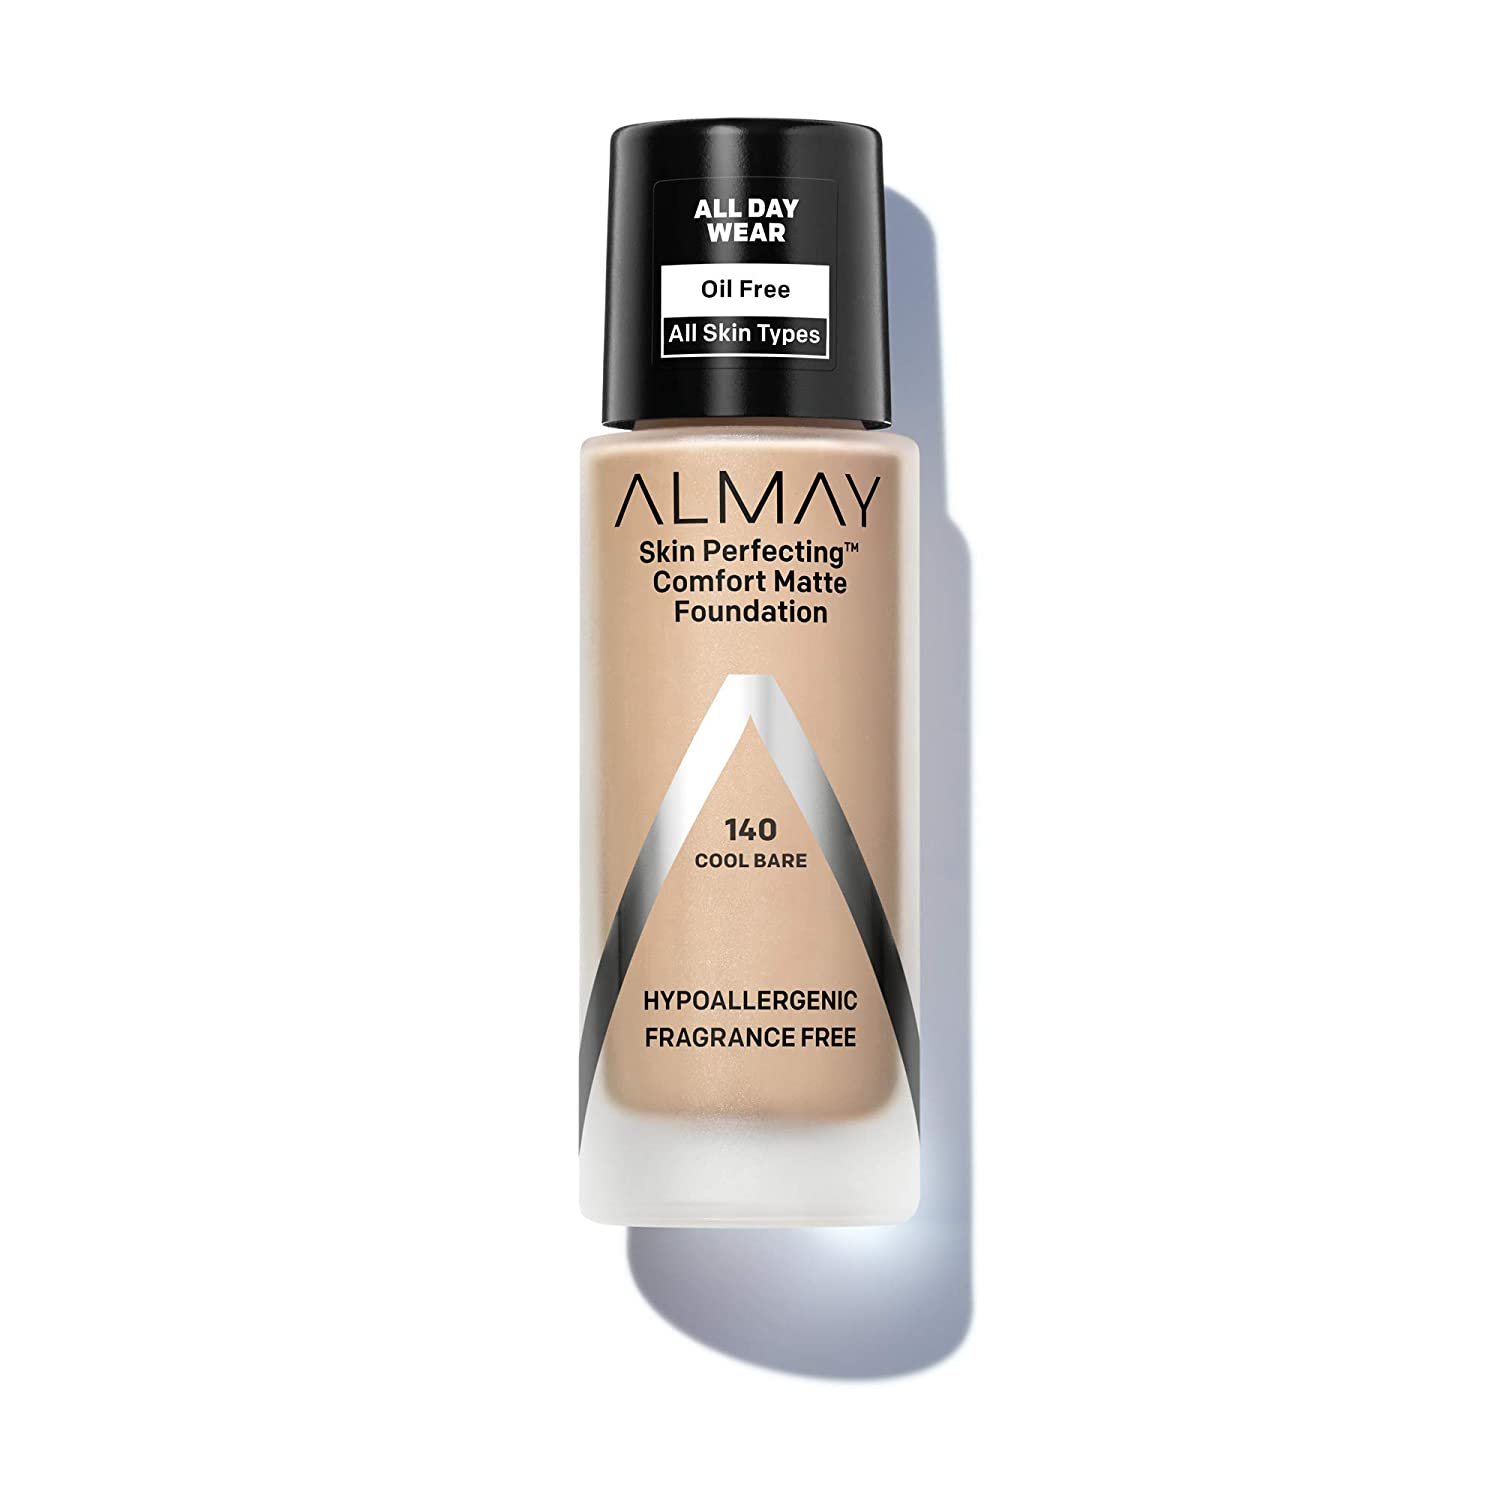 Almay Skin Perfecting Comfort Matte Foundation, Hypoallergenic, Cruelty Free, Fragrance Free, Dermatologist Tested Liquid Makeup, Cool Bare, 1 Fl oz